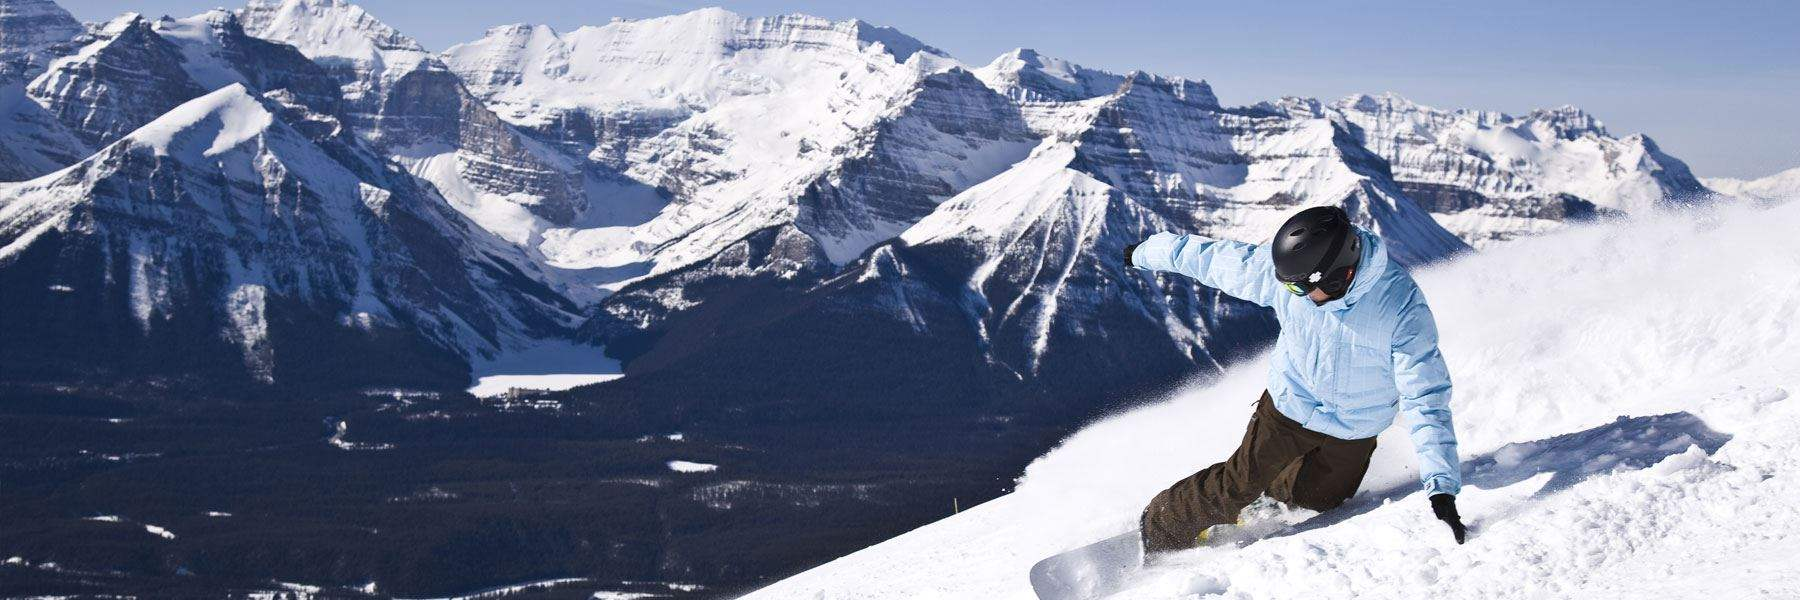 Banff / Lake Louise / Sunshine, CAN Ski Package: Get your 7th Night FREE at Brewster's Mountain Lodge!